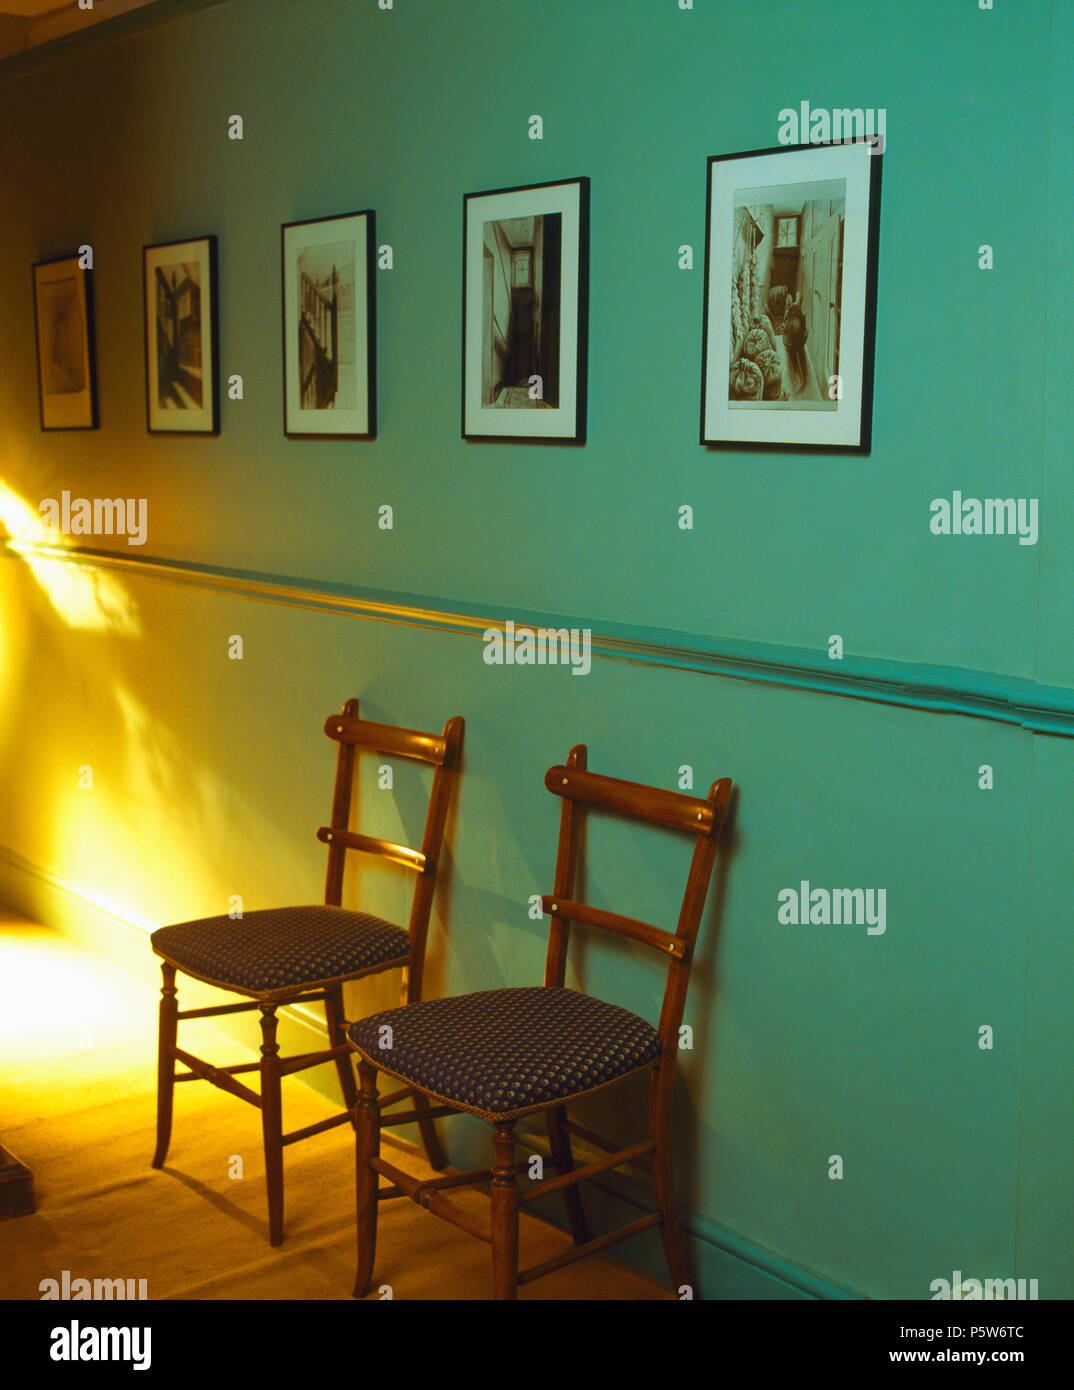 Terrific Vintage Chairs Stock Photos Vintage Chairs Stock Images Download Free Architecture Designs Scobabritishbridgeorg